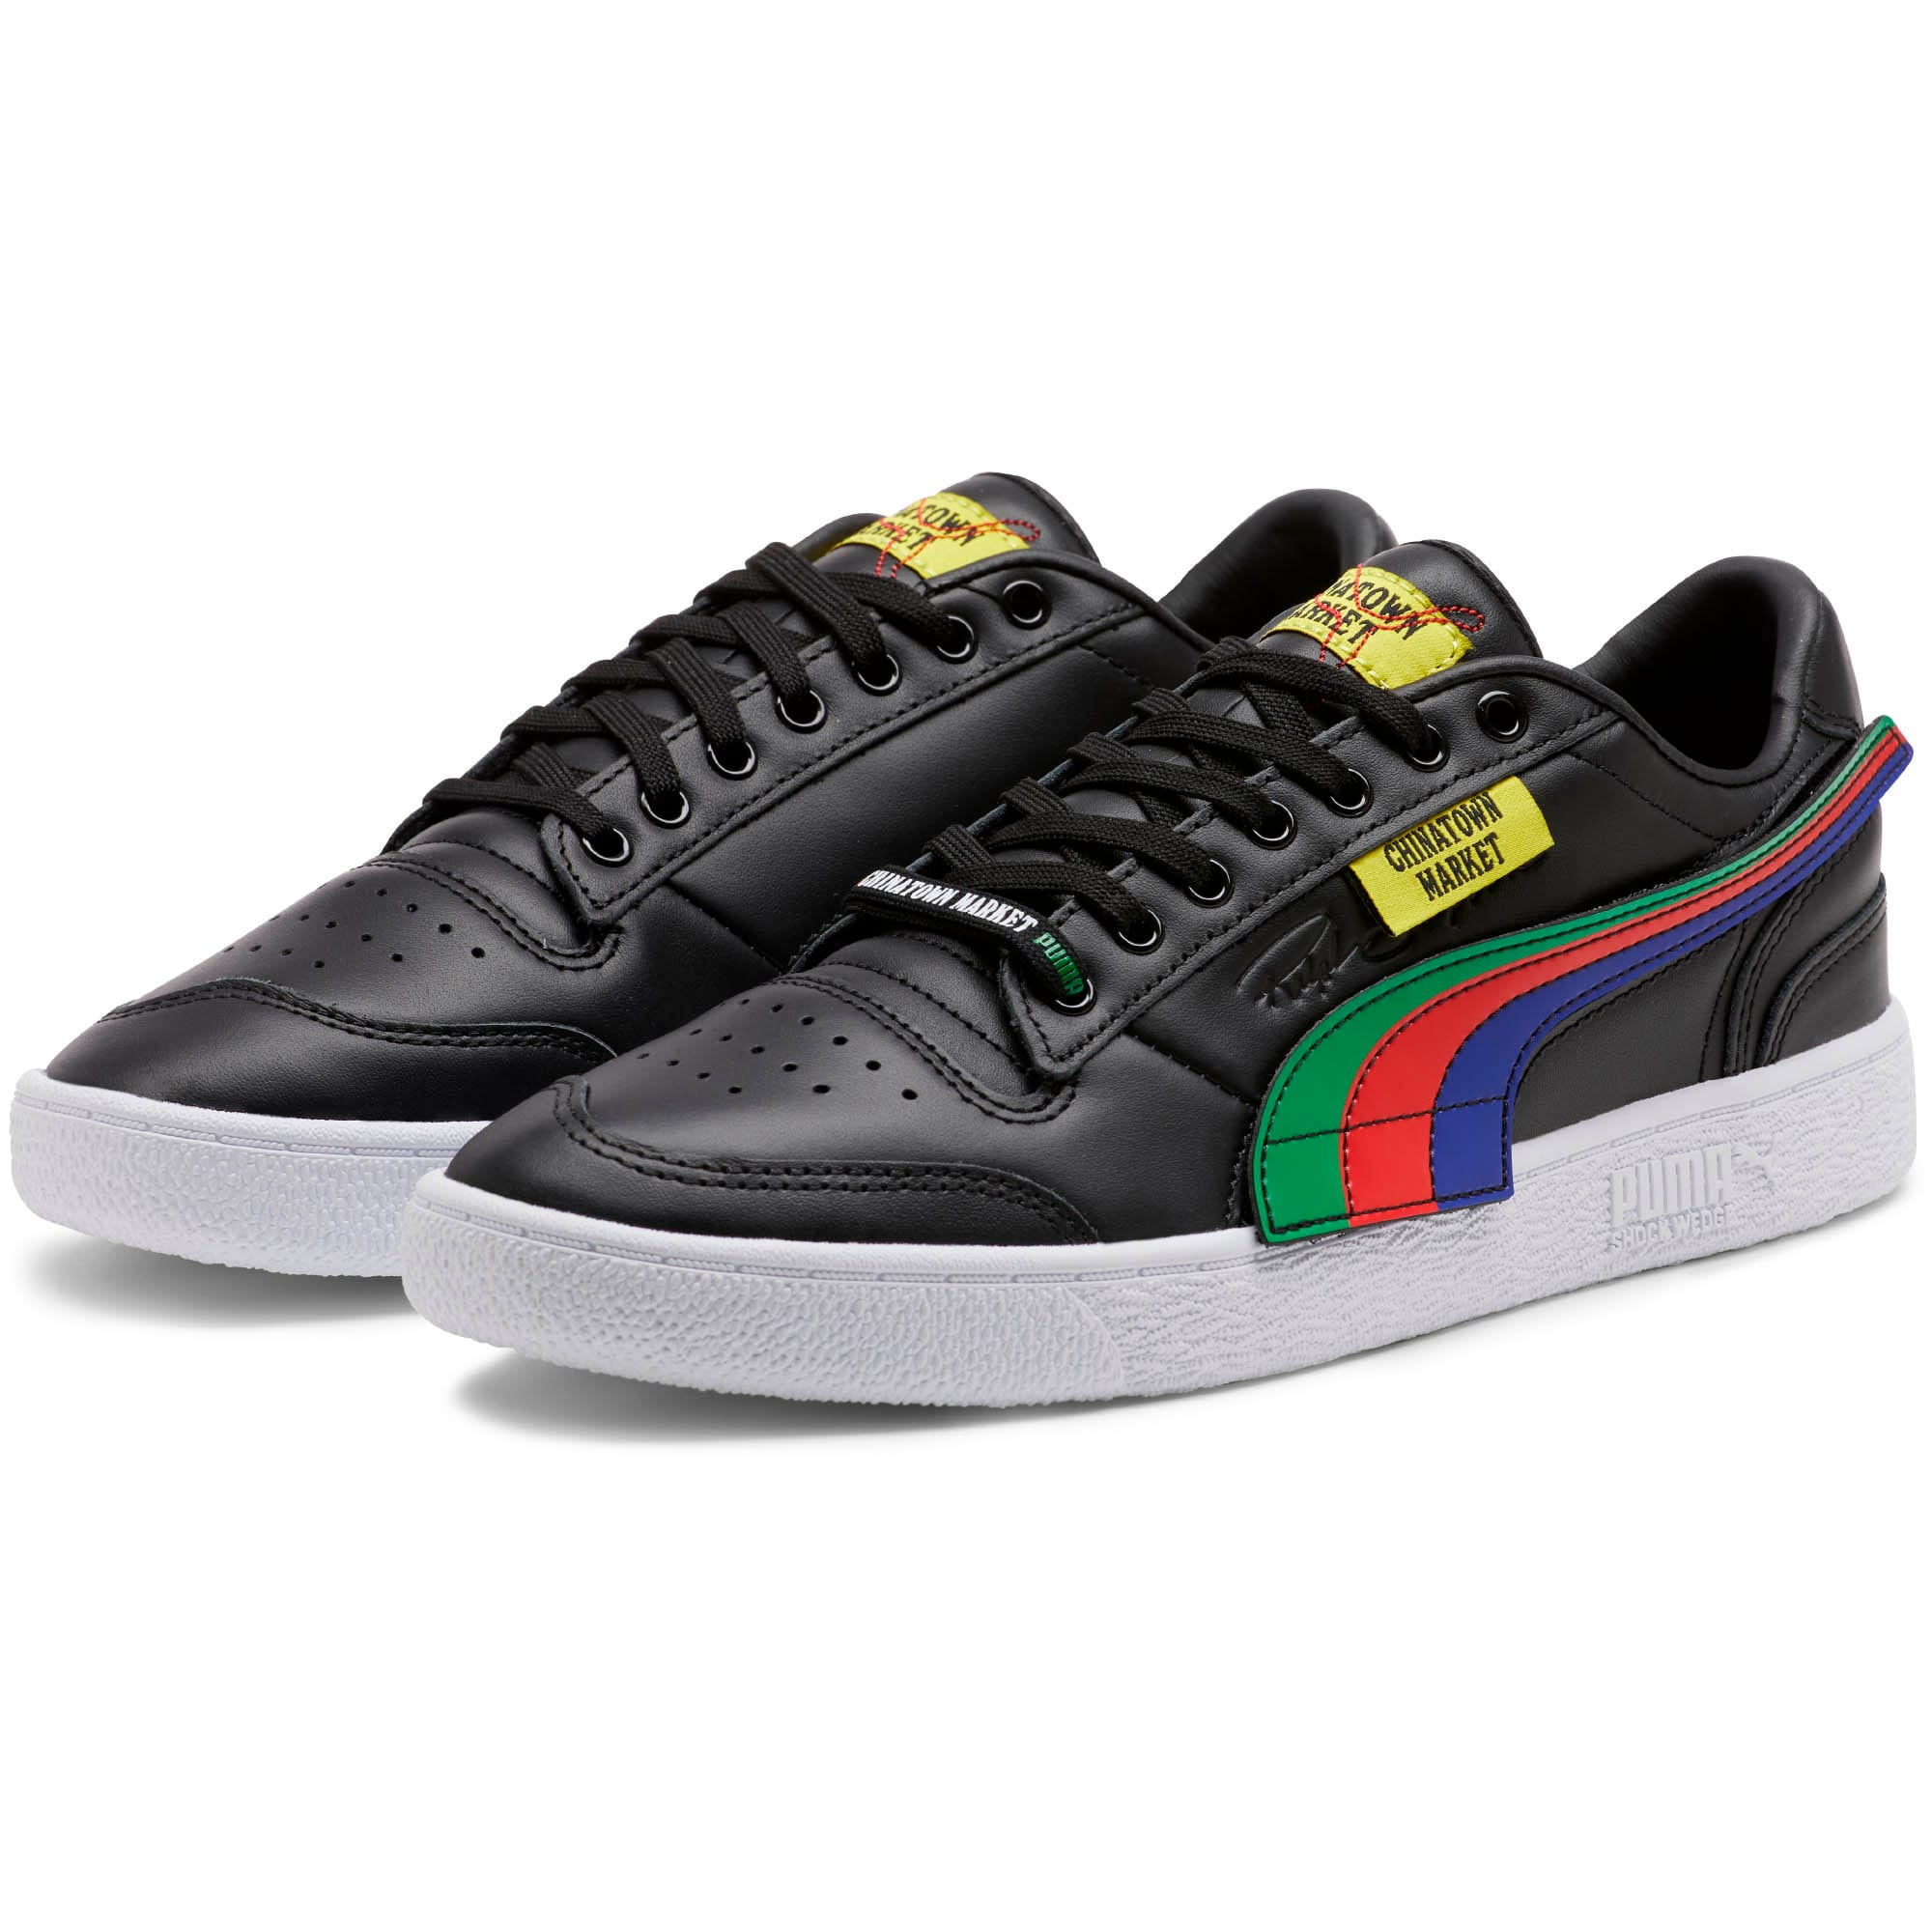 Thumbnail 2 of PUMA x CHINATOWN MARKET Ralph Sampson Lo Sneakers, Puma Black, medium